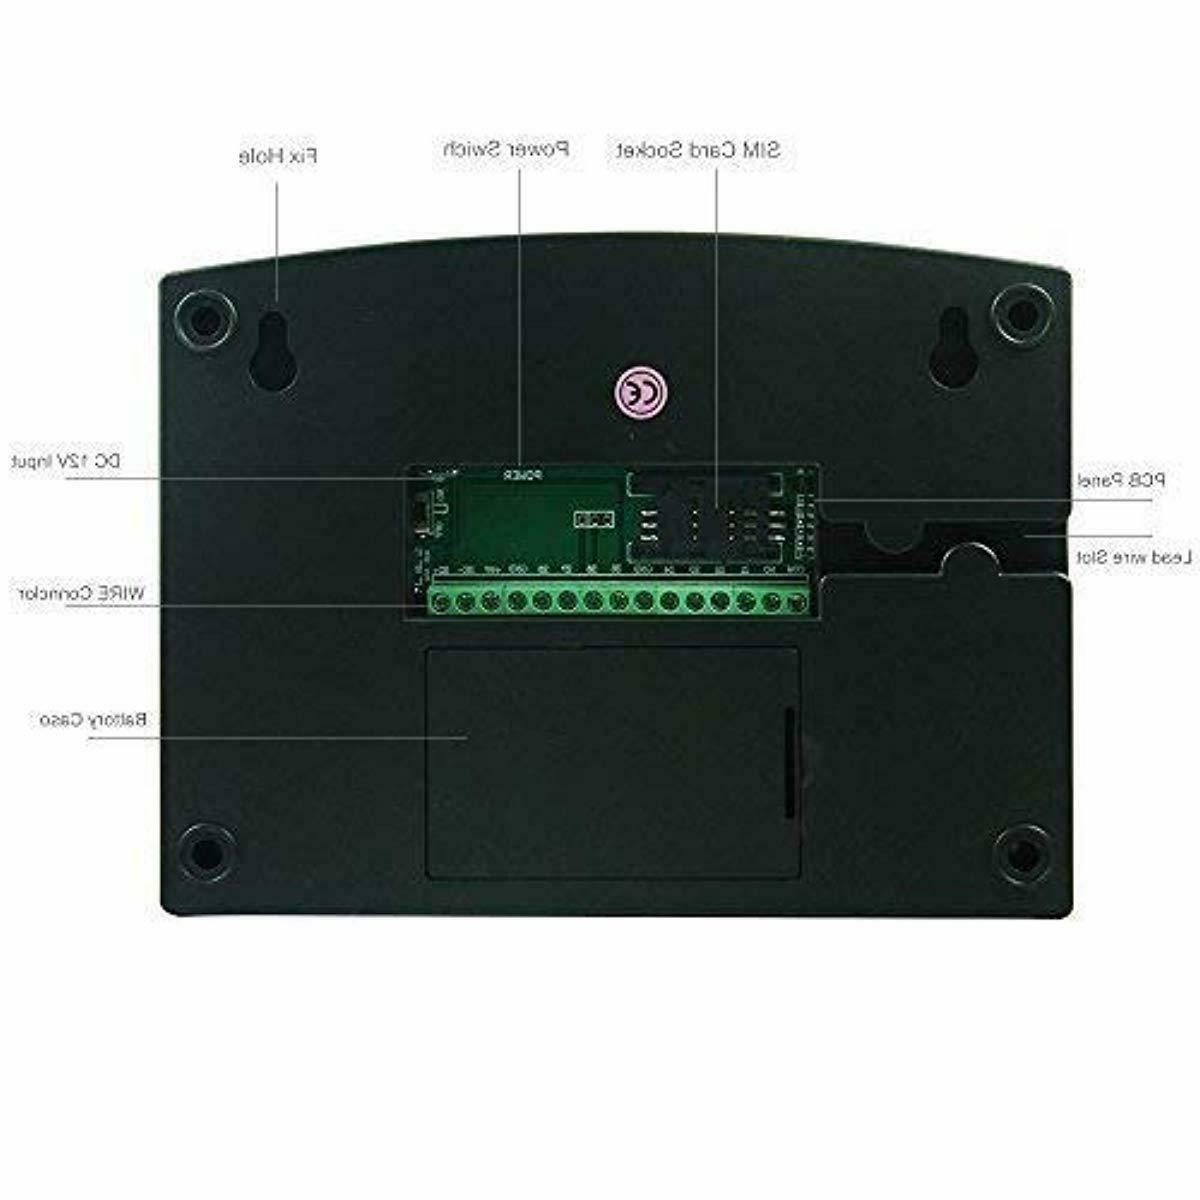 AG-security Home Security Alarm System with